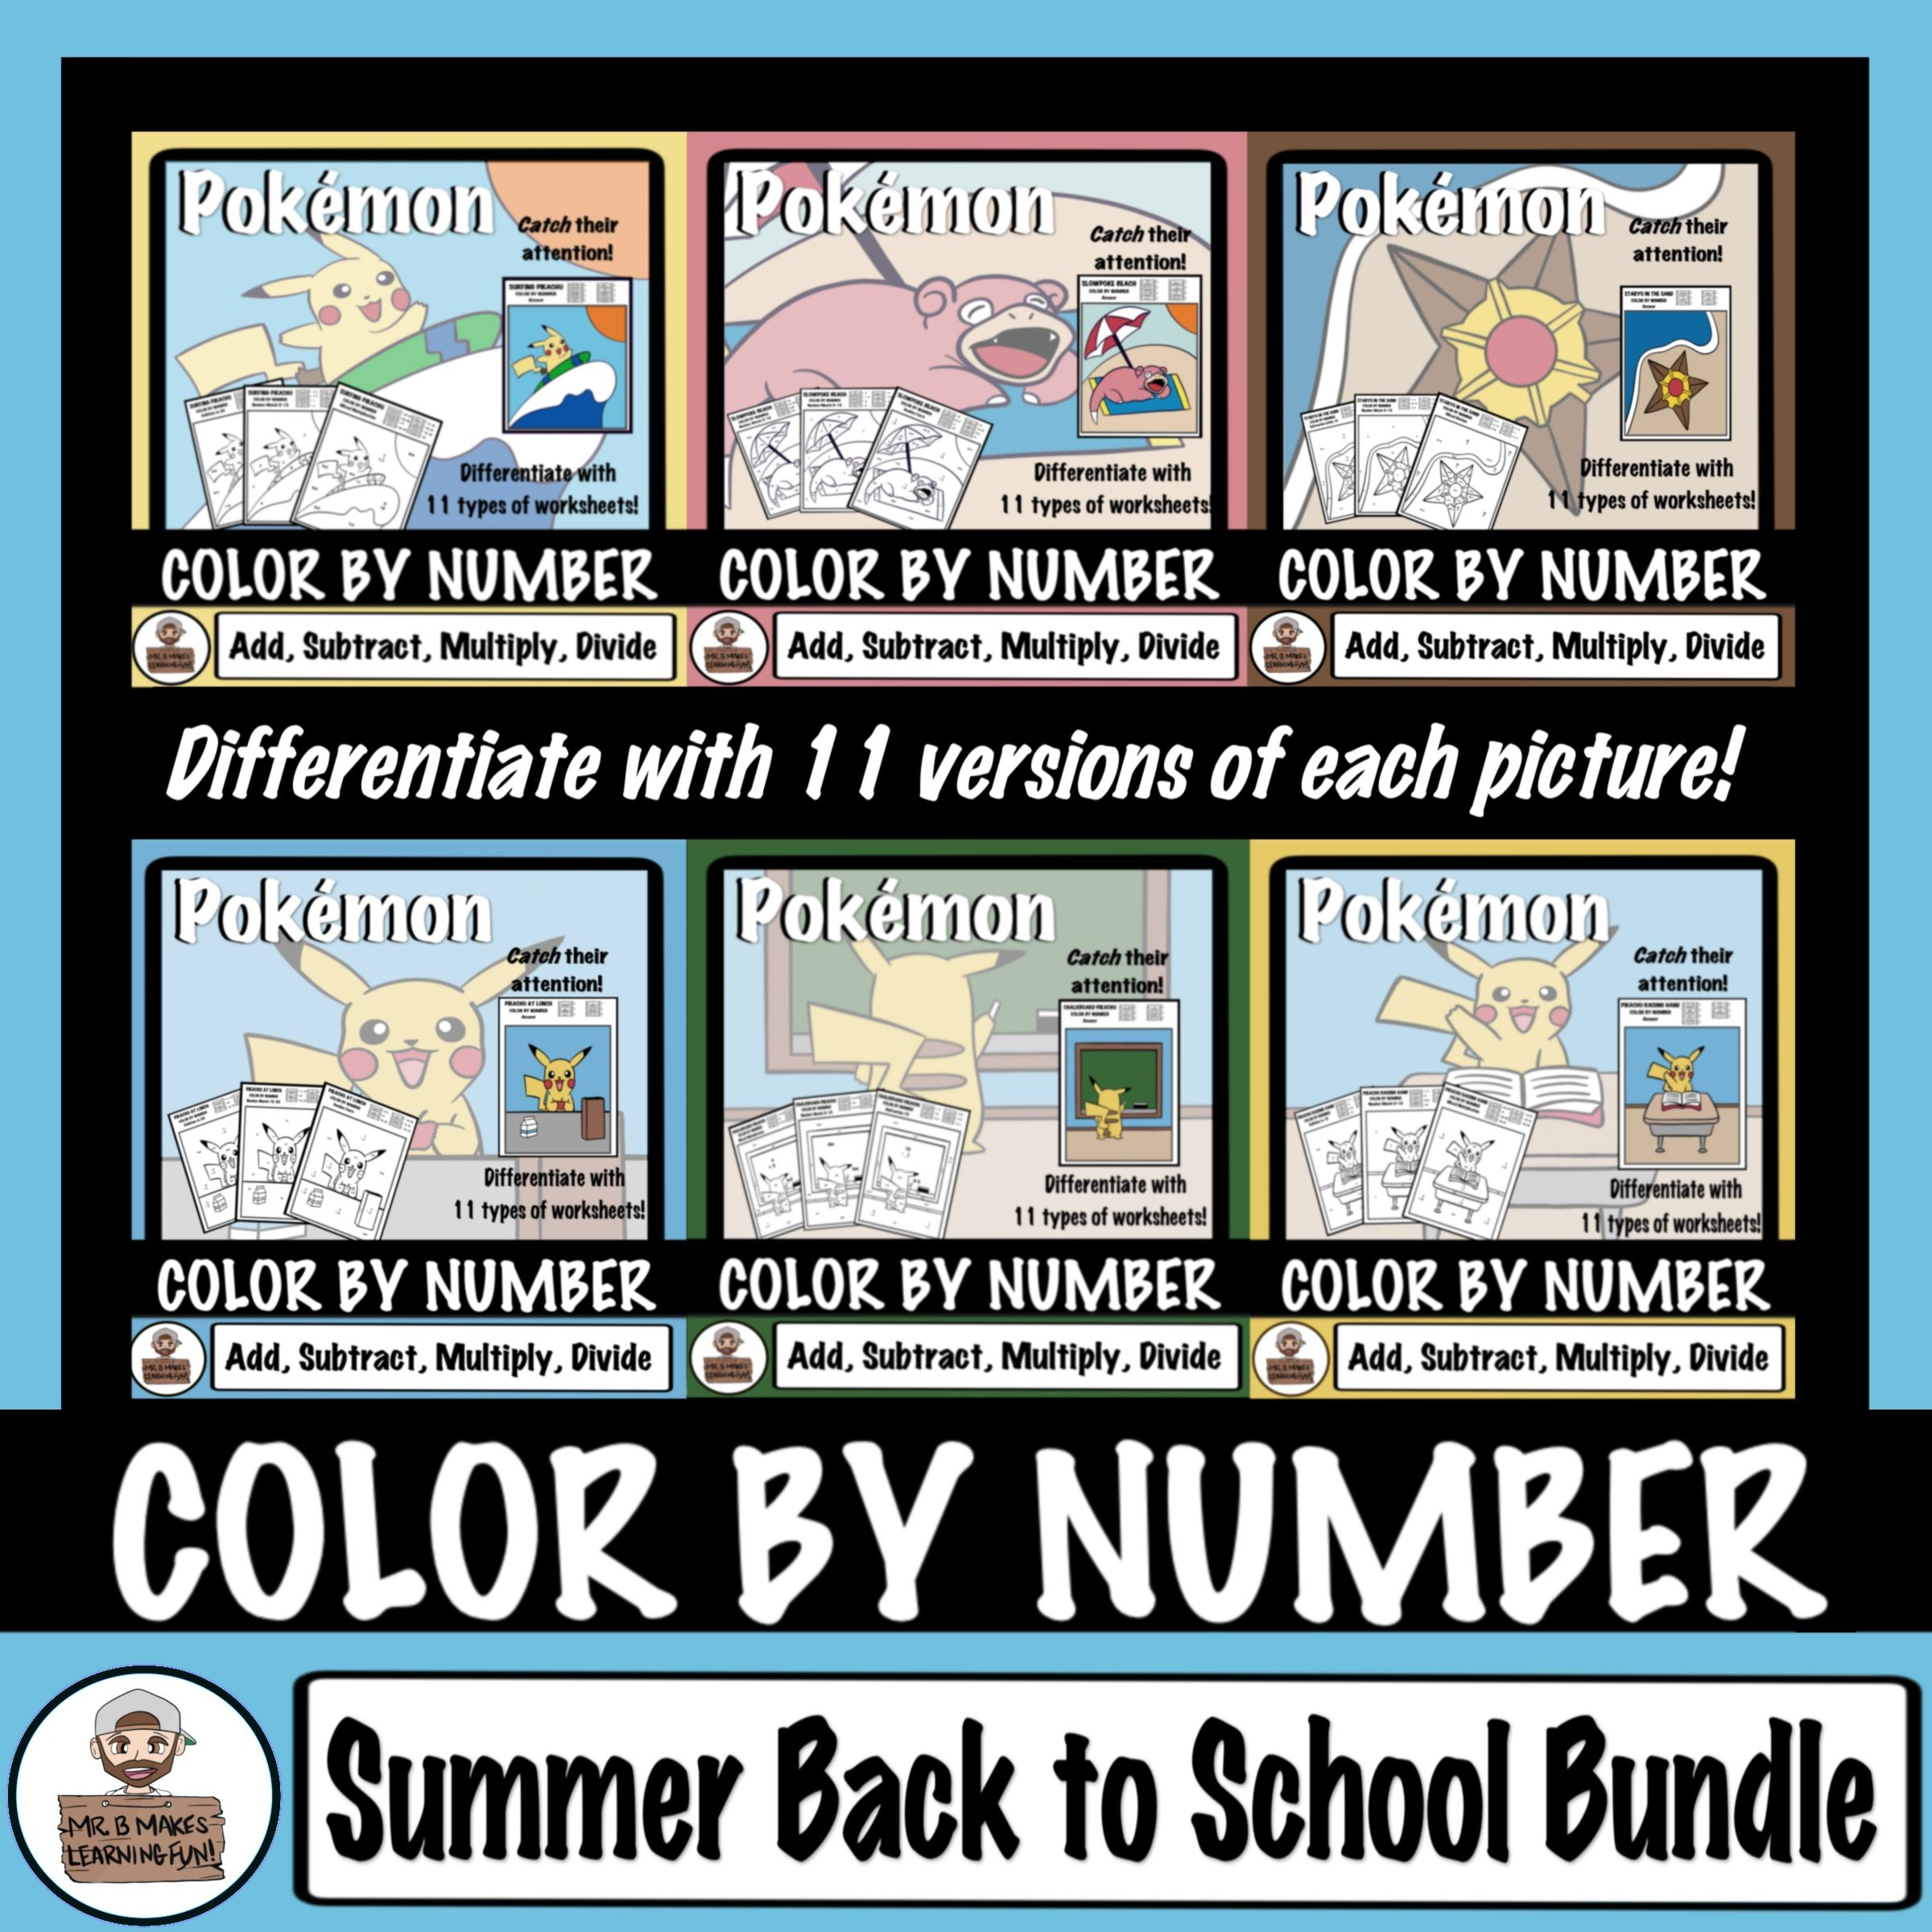 SUMMER BACK TO SCHOOL BUNDLE - Pokémon Color By Number | Pokémon ...